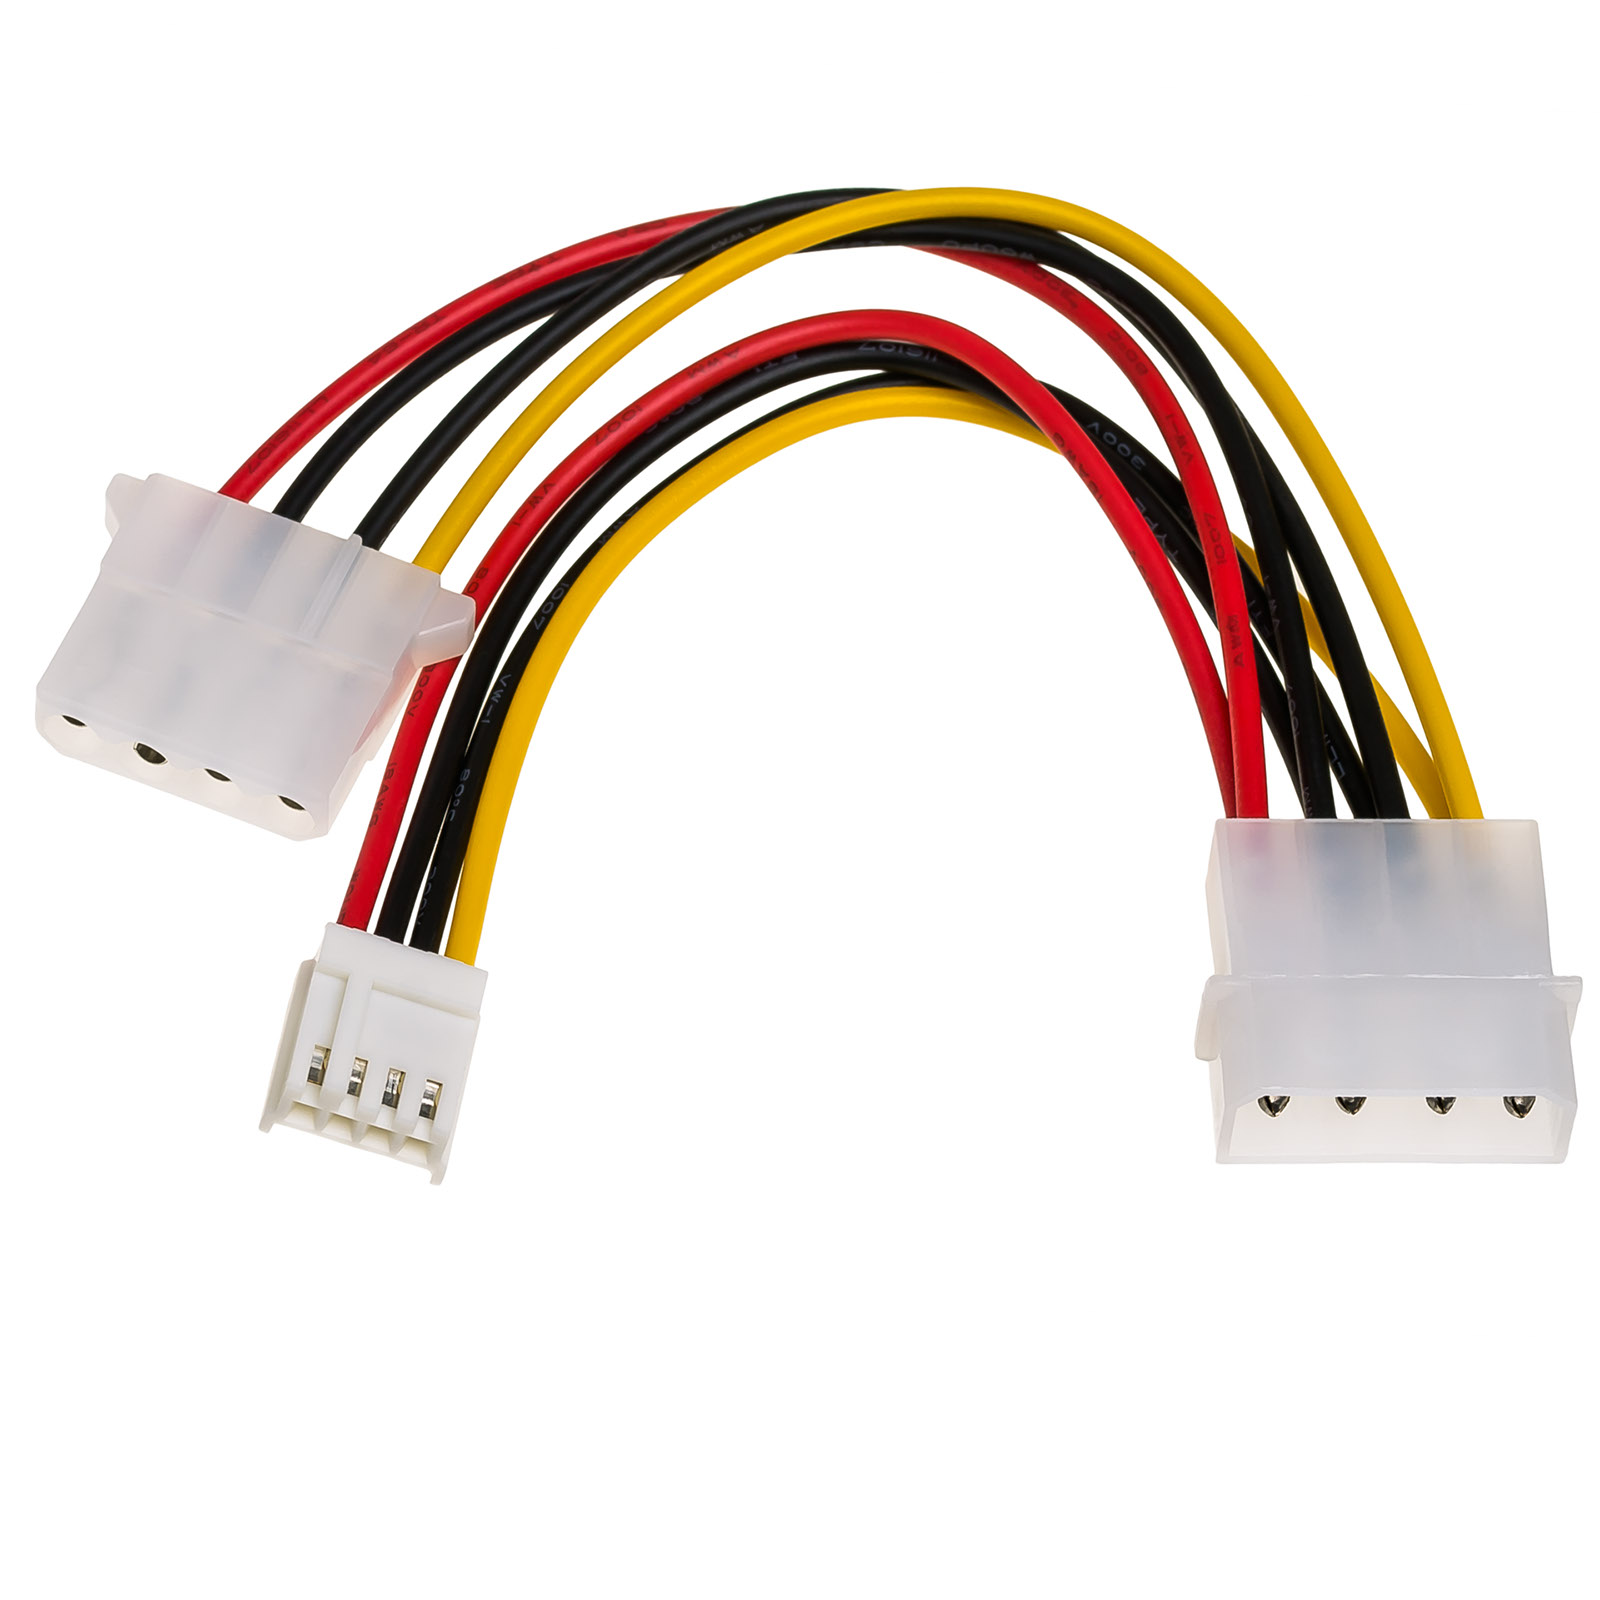 main_image Adapter Molex/mini-Molex/Molex AK-CA-14